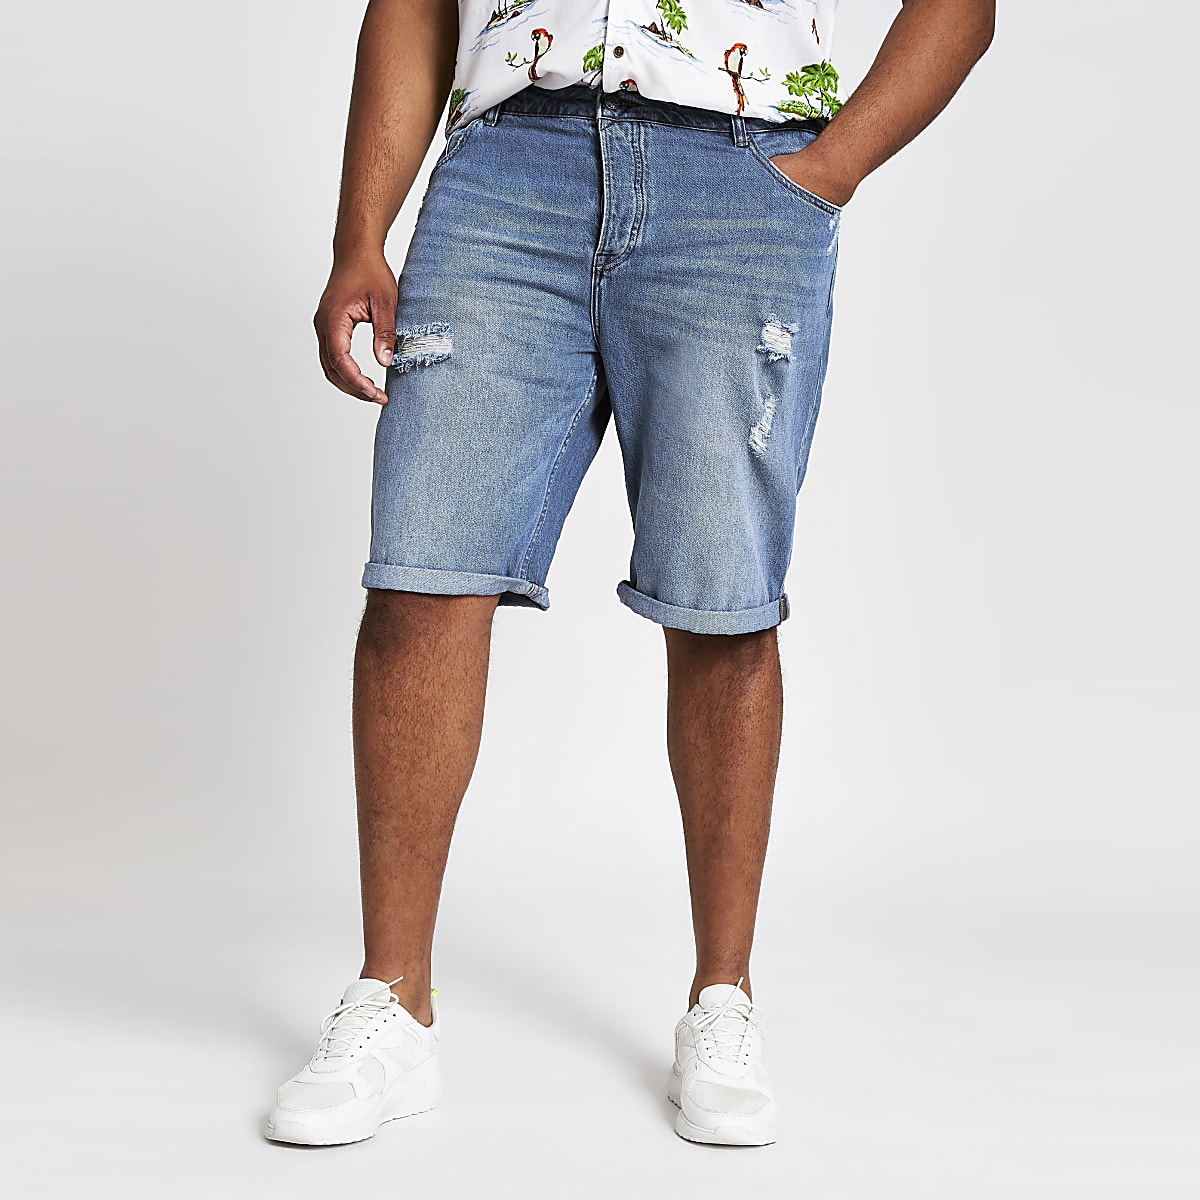 Only & Sons Big and Tall blue denim shorts